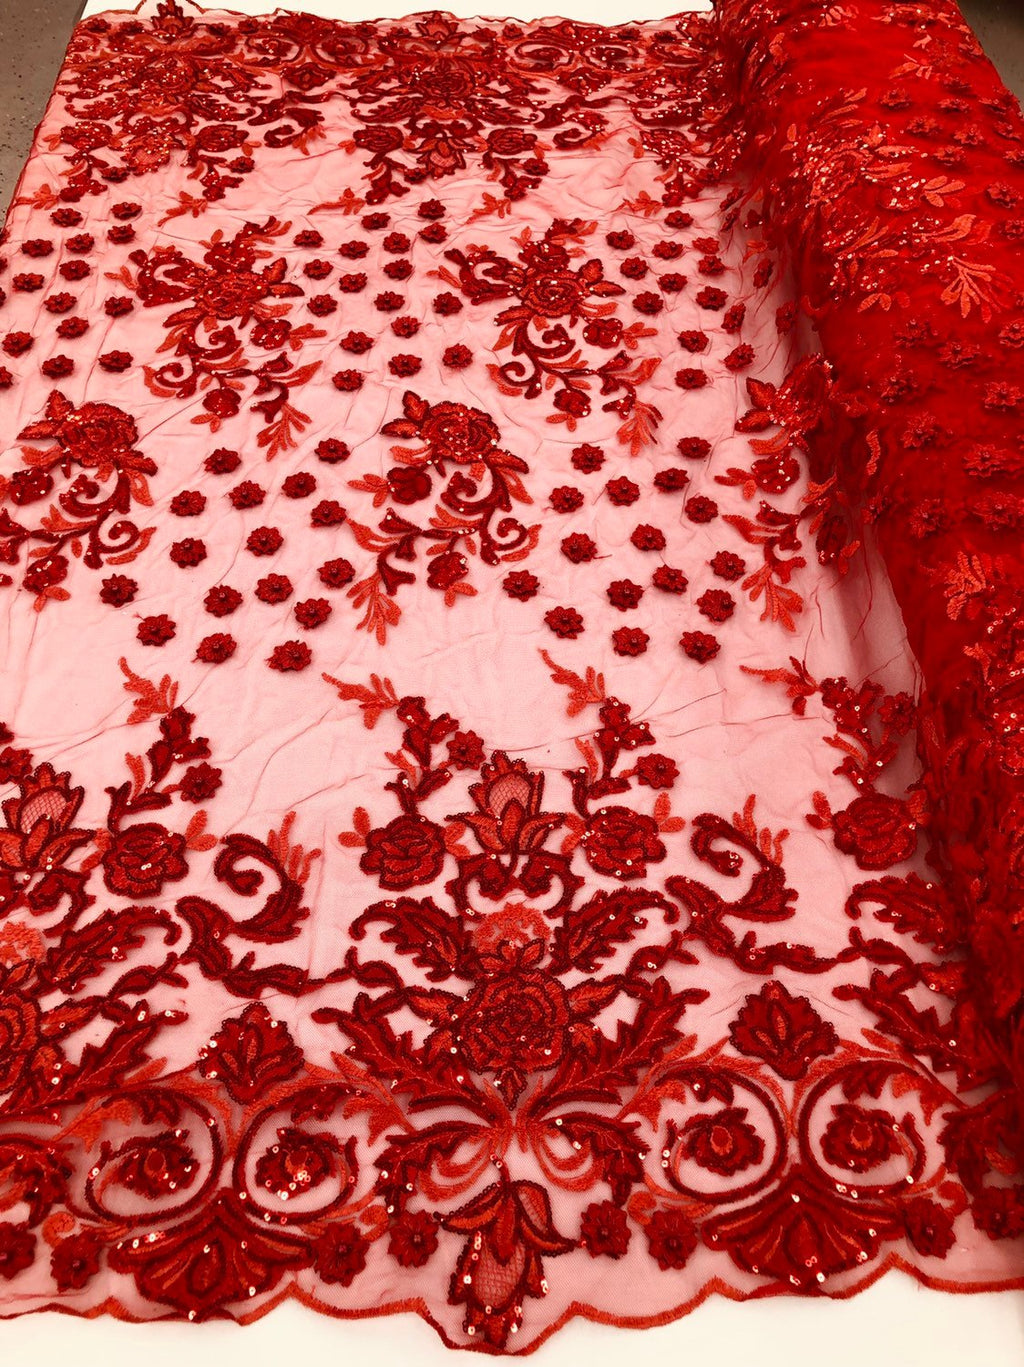 RED Lace Fabric - Mini 3D Flower Embroidered On A Mesh Sequins And Beaded Fabric Floral Wedding Bridal Veil Prom-Gown - Sol By The Yard